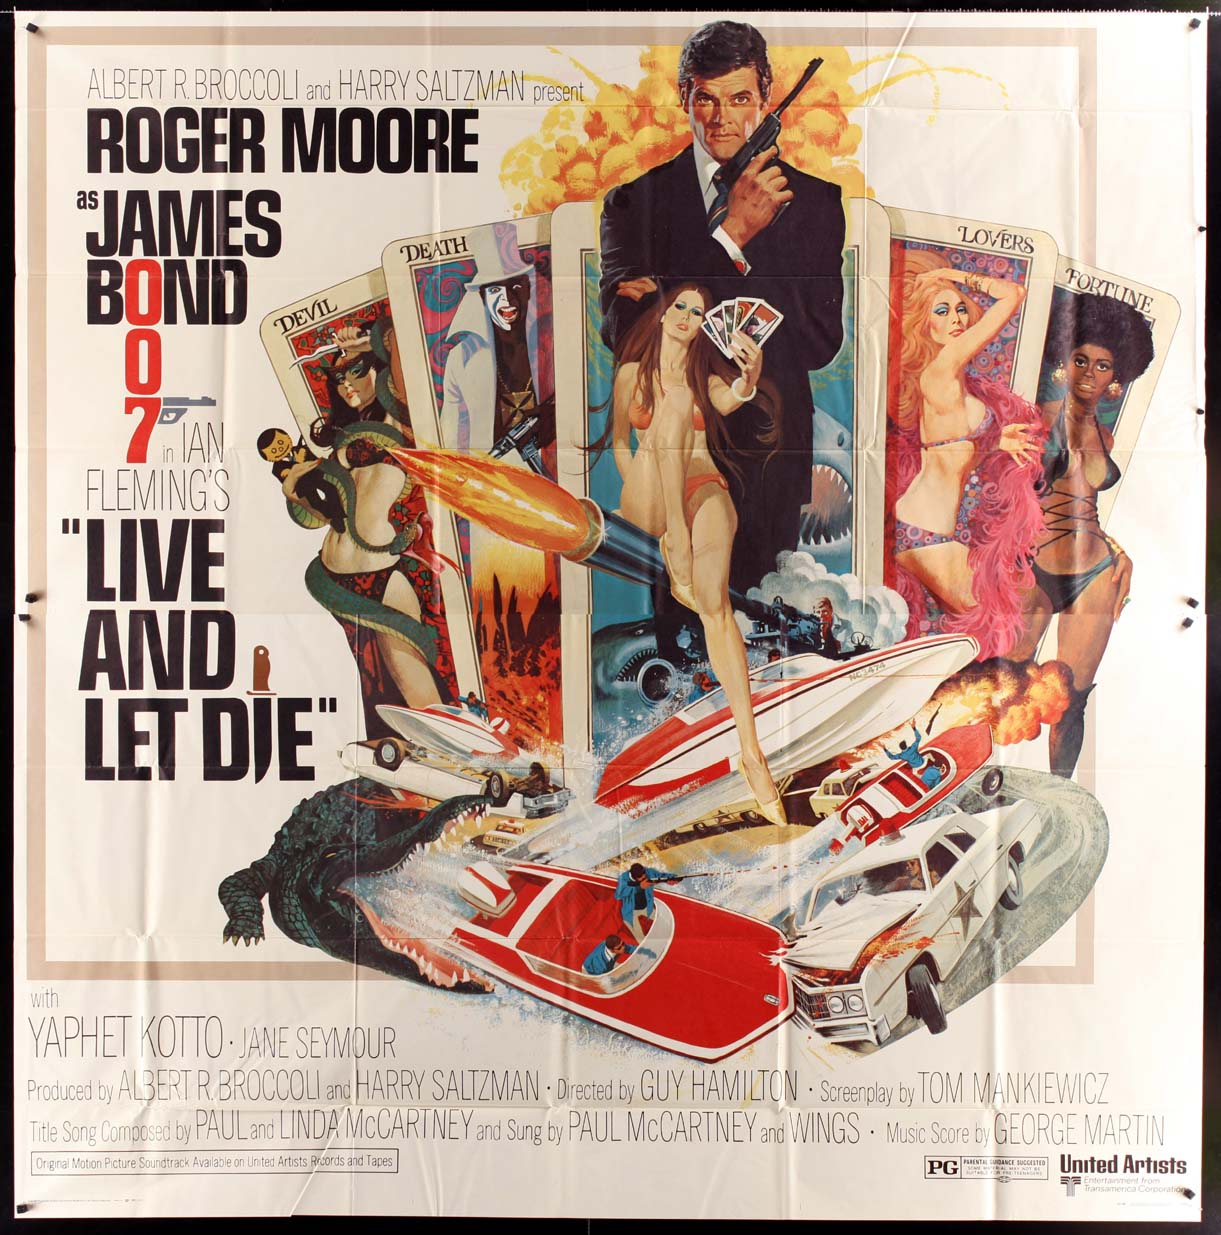 LIVE AND LET DIE @ FilmPosters.com